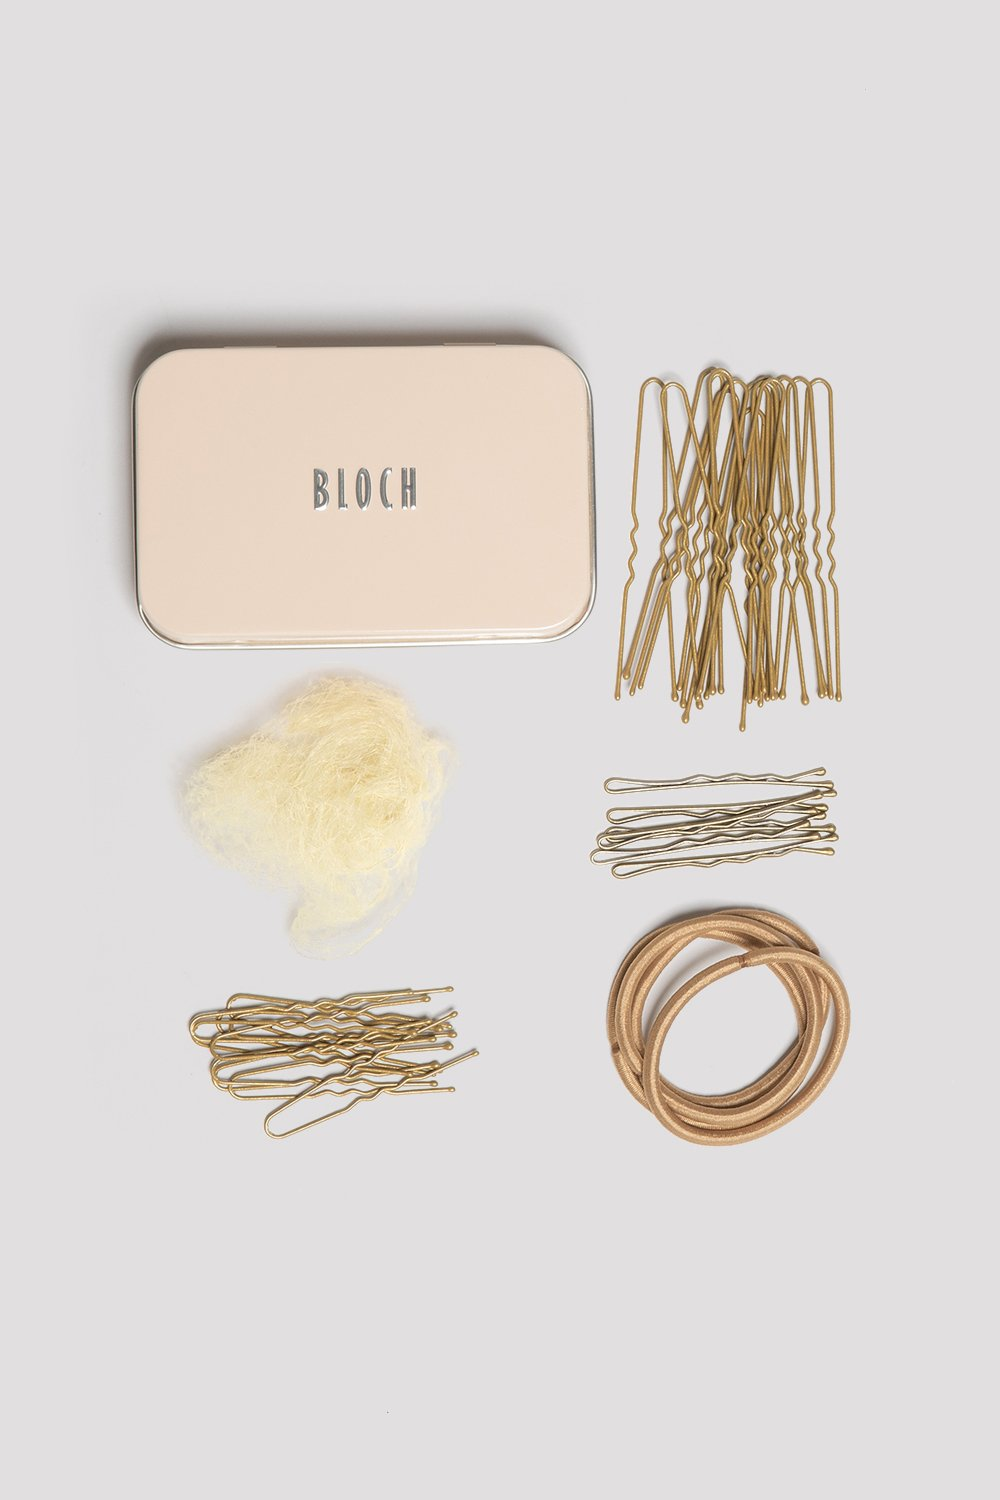 Blonde Bloch Hair Kit flatlay of pins, hairnet and elastics